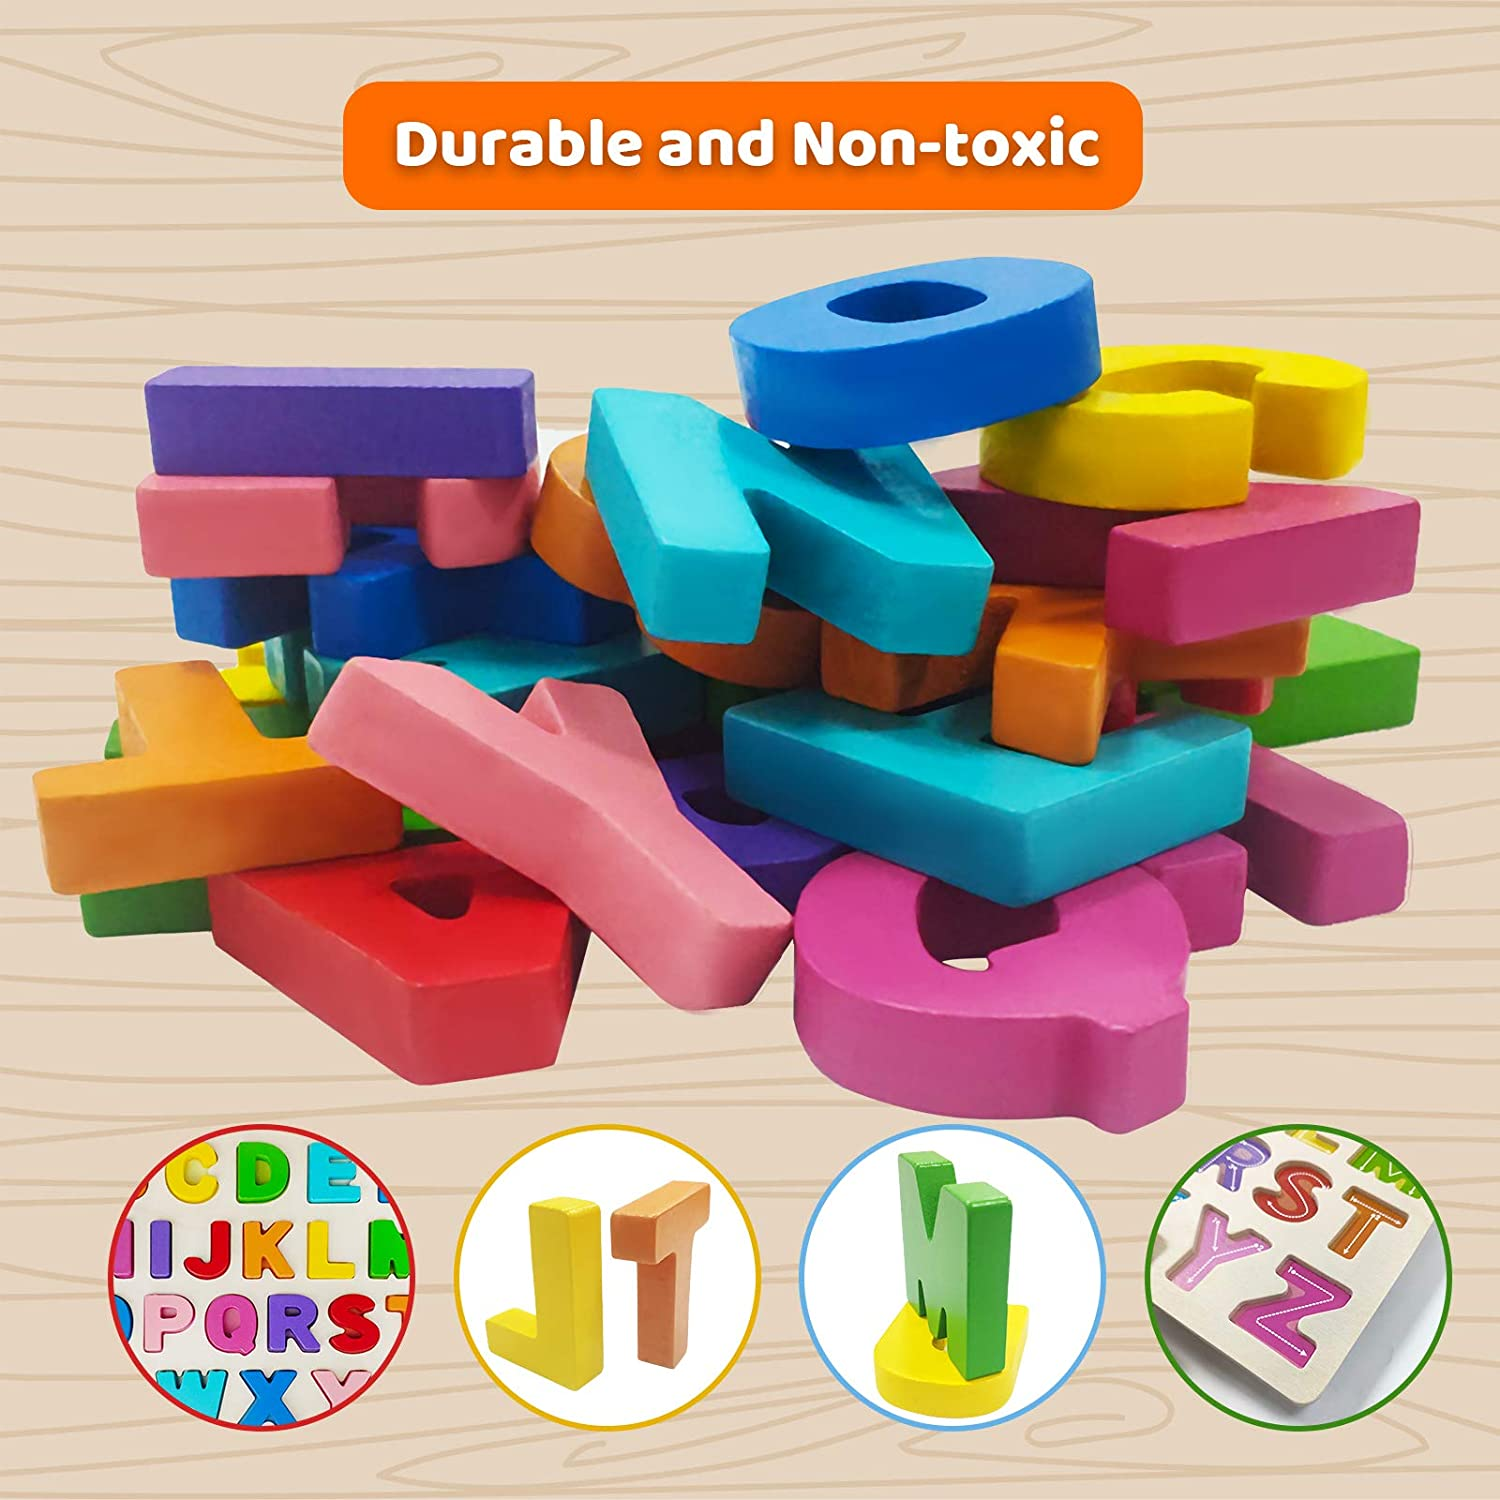 Storage Bag with ABC Flash Cards Toddler Alphabet Learning Educational Puzzle Toys Set for Boys and Girls Wooden Alphabet Puzzle Board Set of 4 ABC Puzzle Wooden Letter Blocks for Kids 1-6